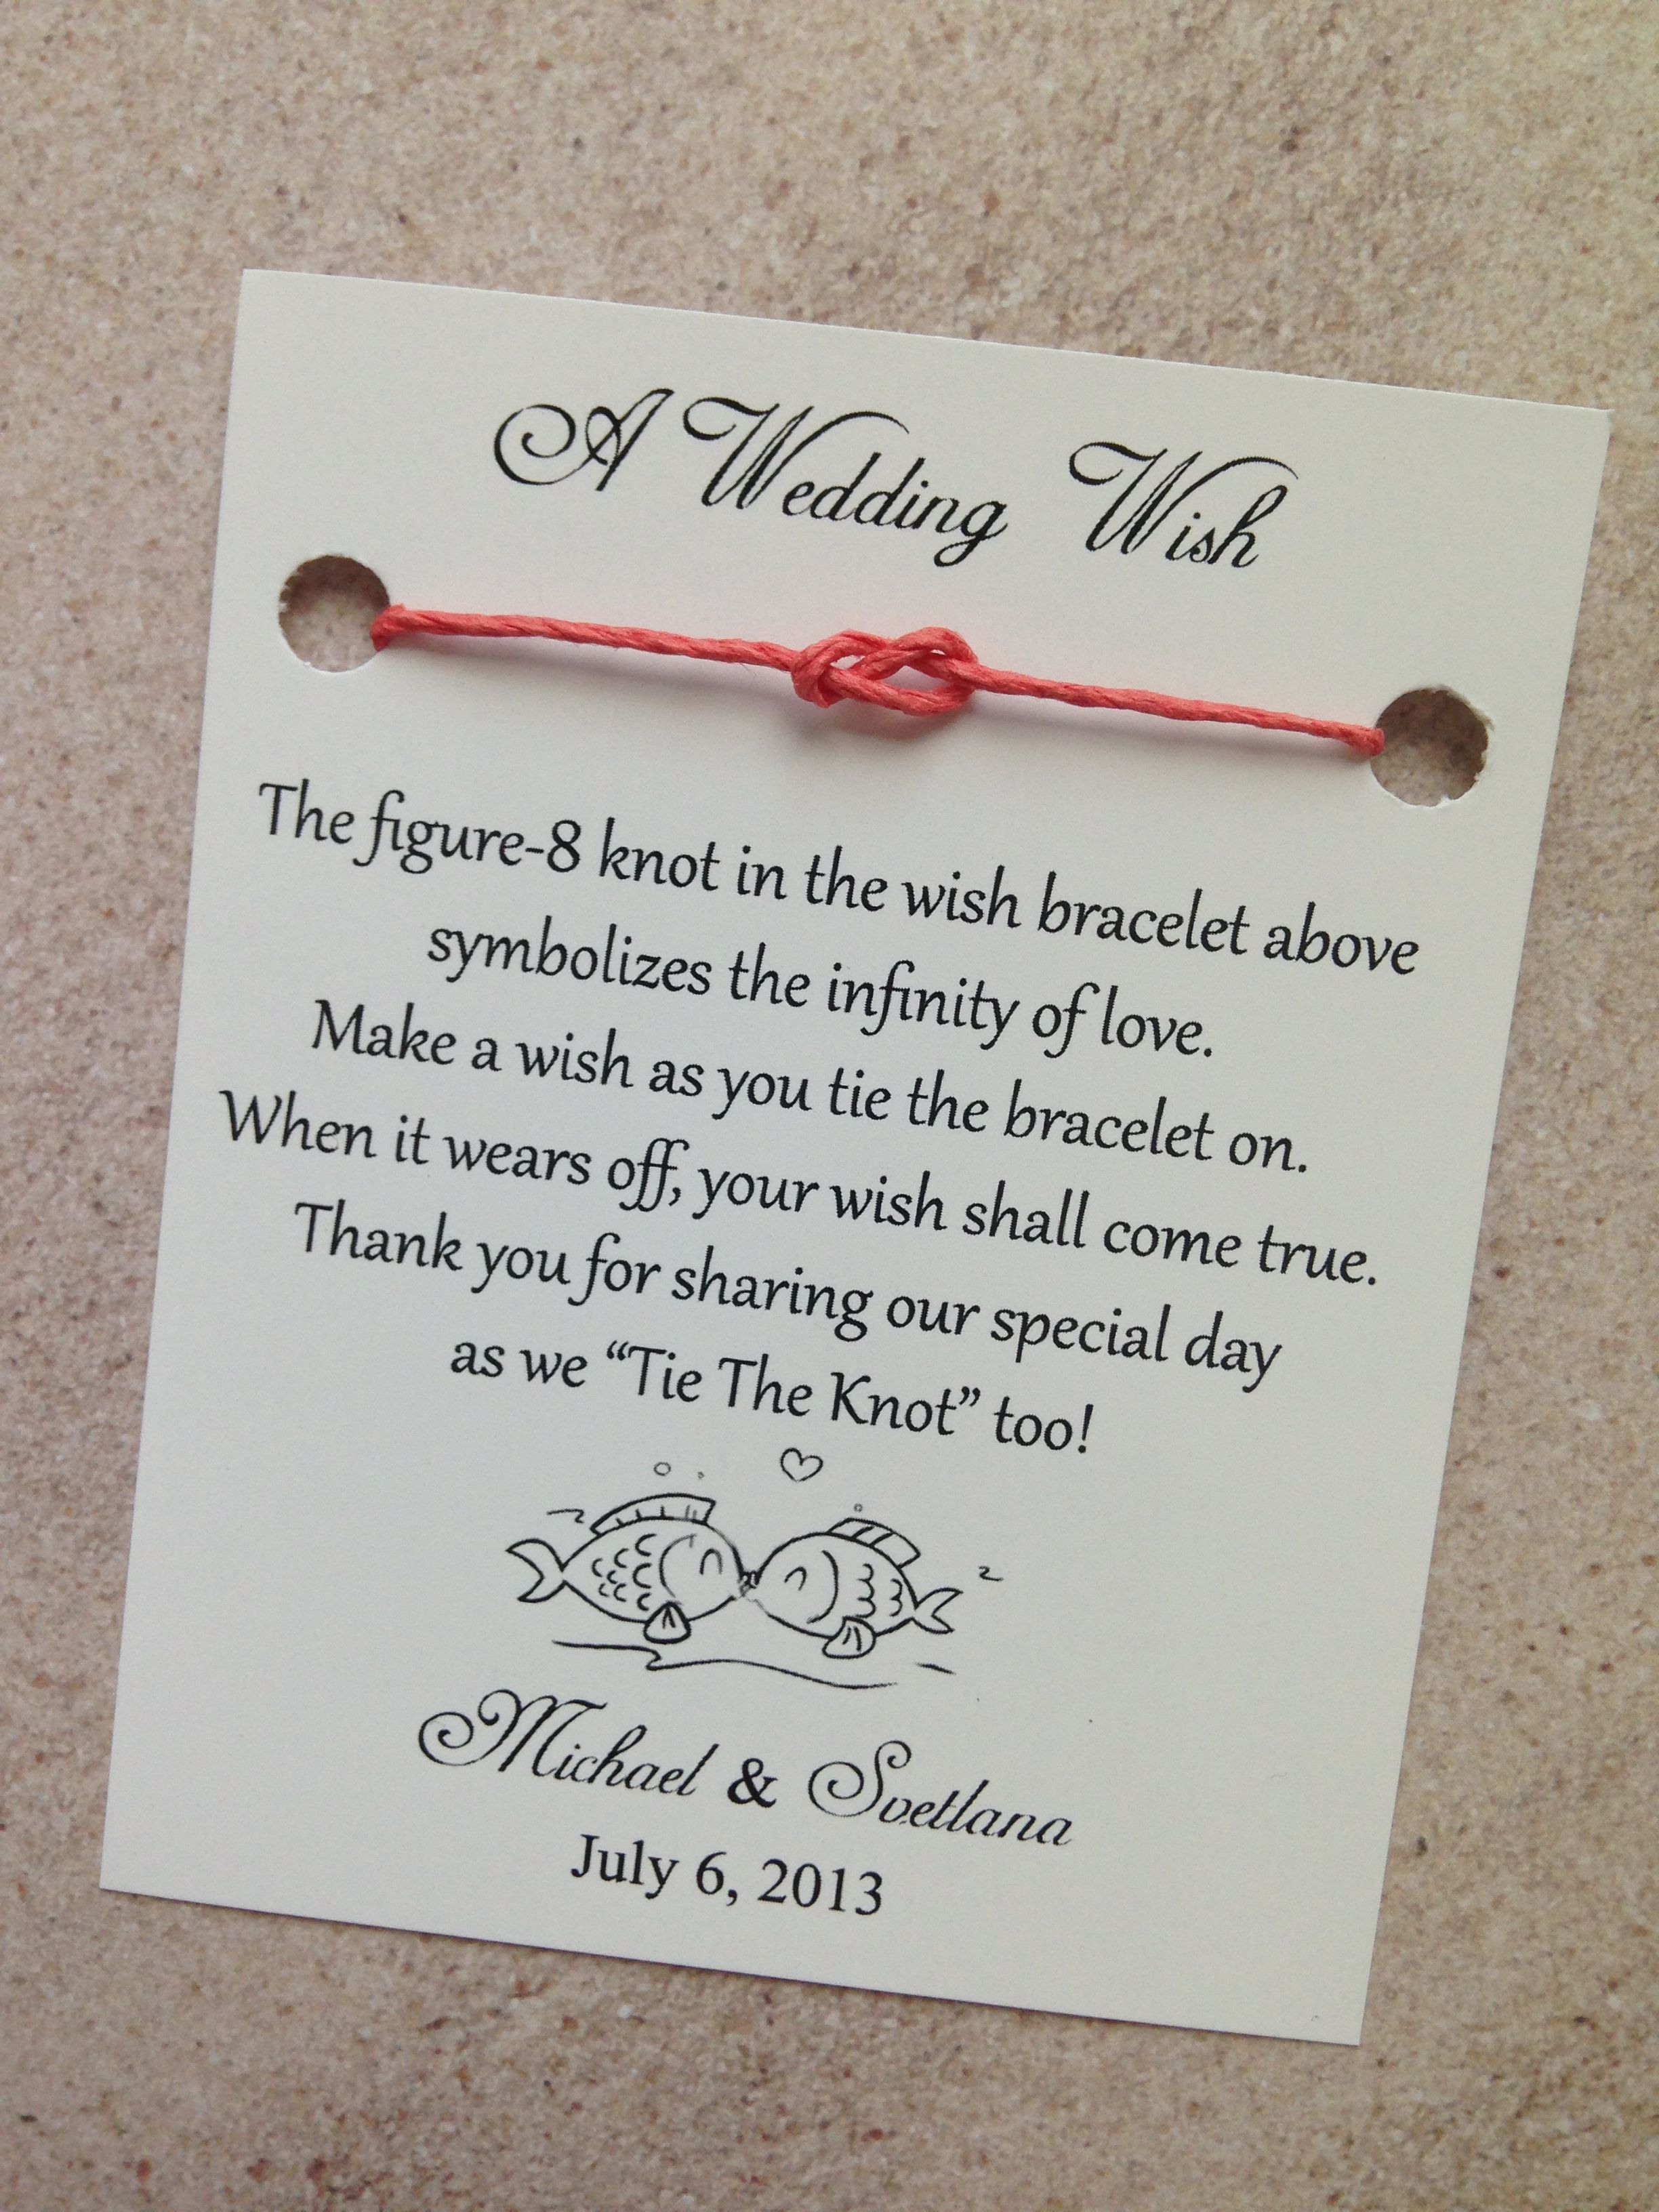 160 This Adorable Wedding Favor is a